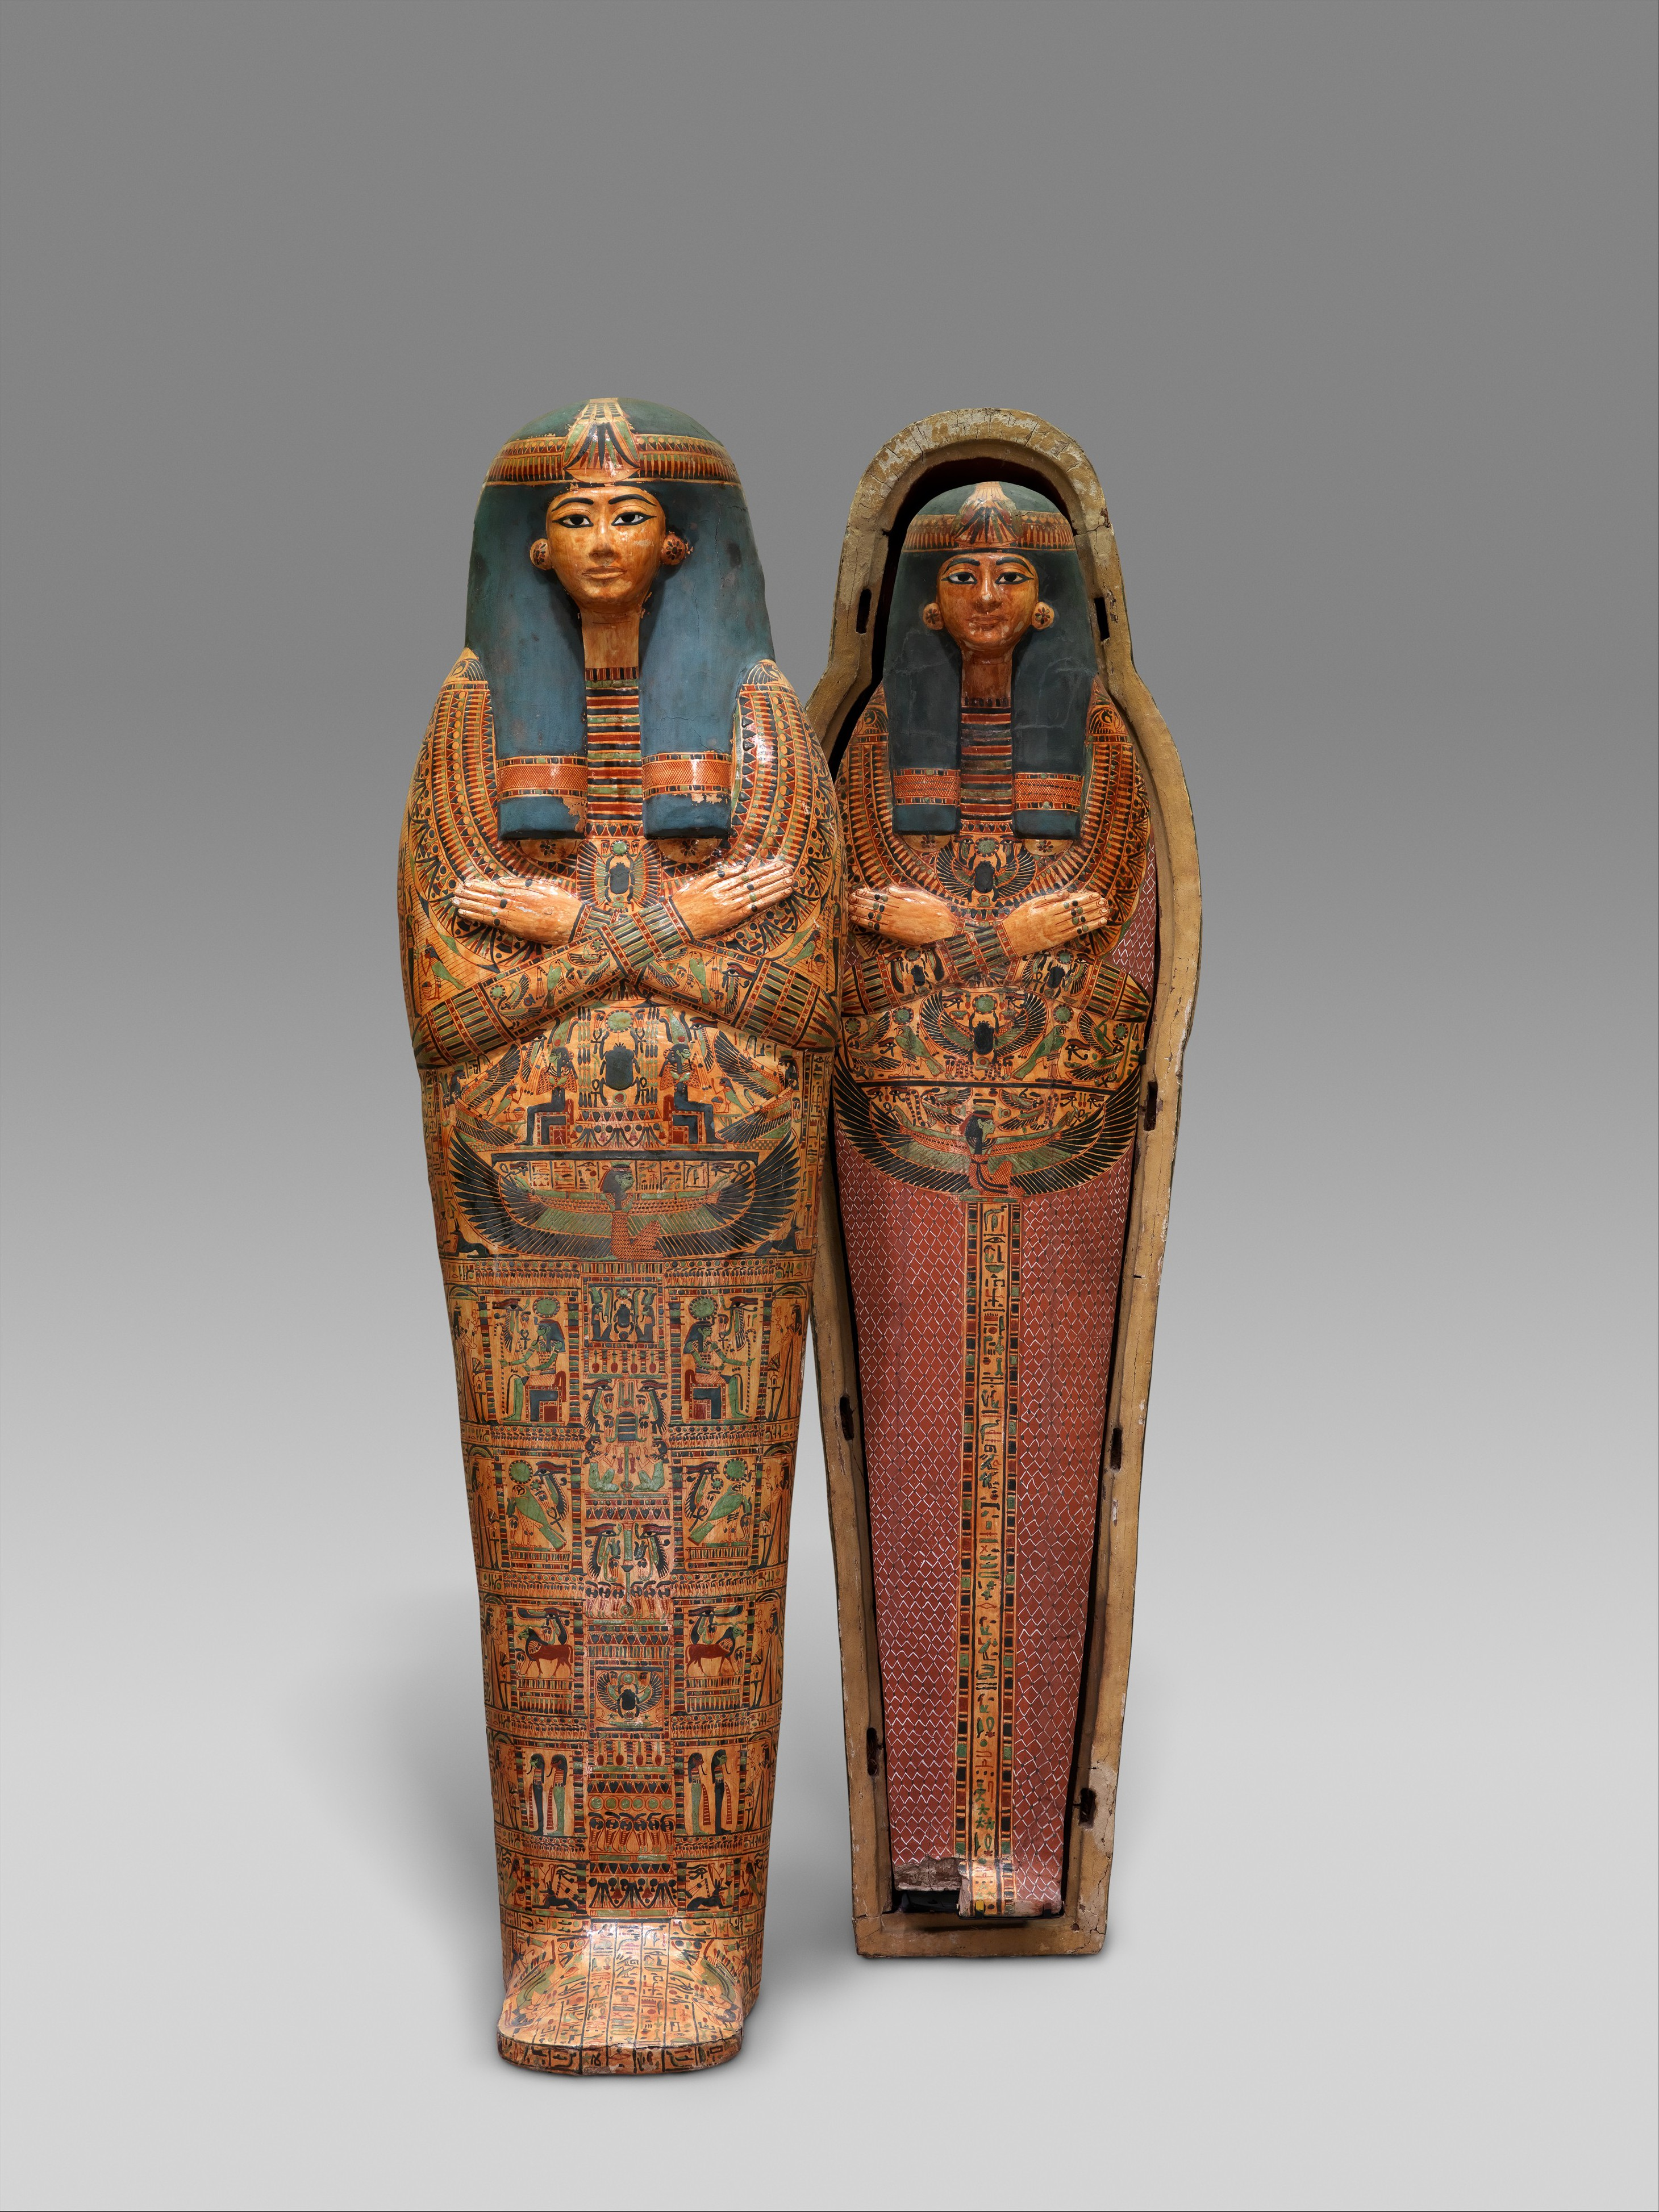 Amun Re Photographic Arts: Mummy Board Of The Singer Of Amun-Re, Henettawy